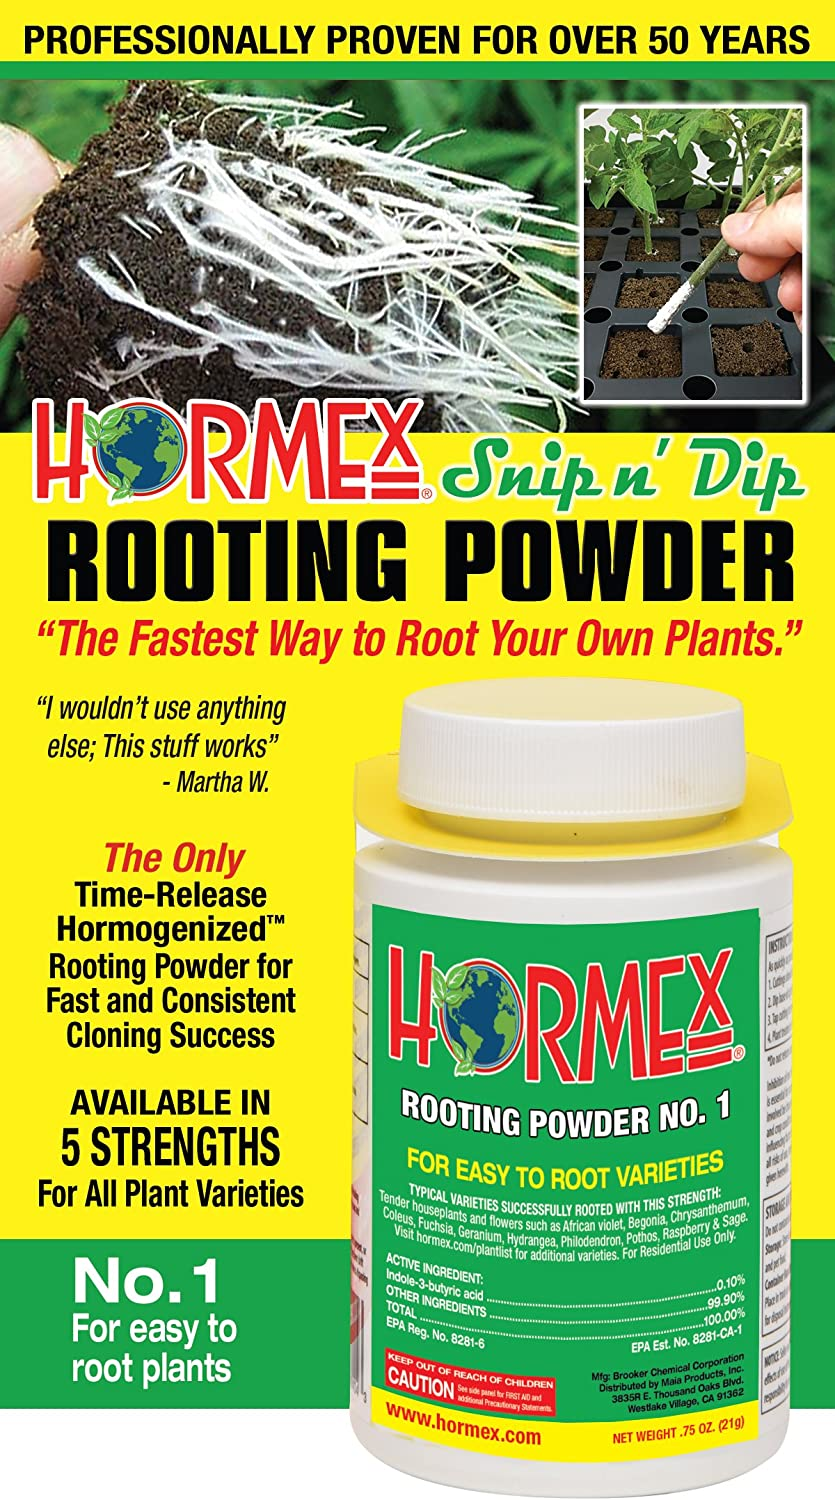 Hormex Rooting Hormone Powder #1 | for Easy to Root Plants | IBA Rooting Powder Compound for Strong and Healthy Roots